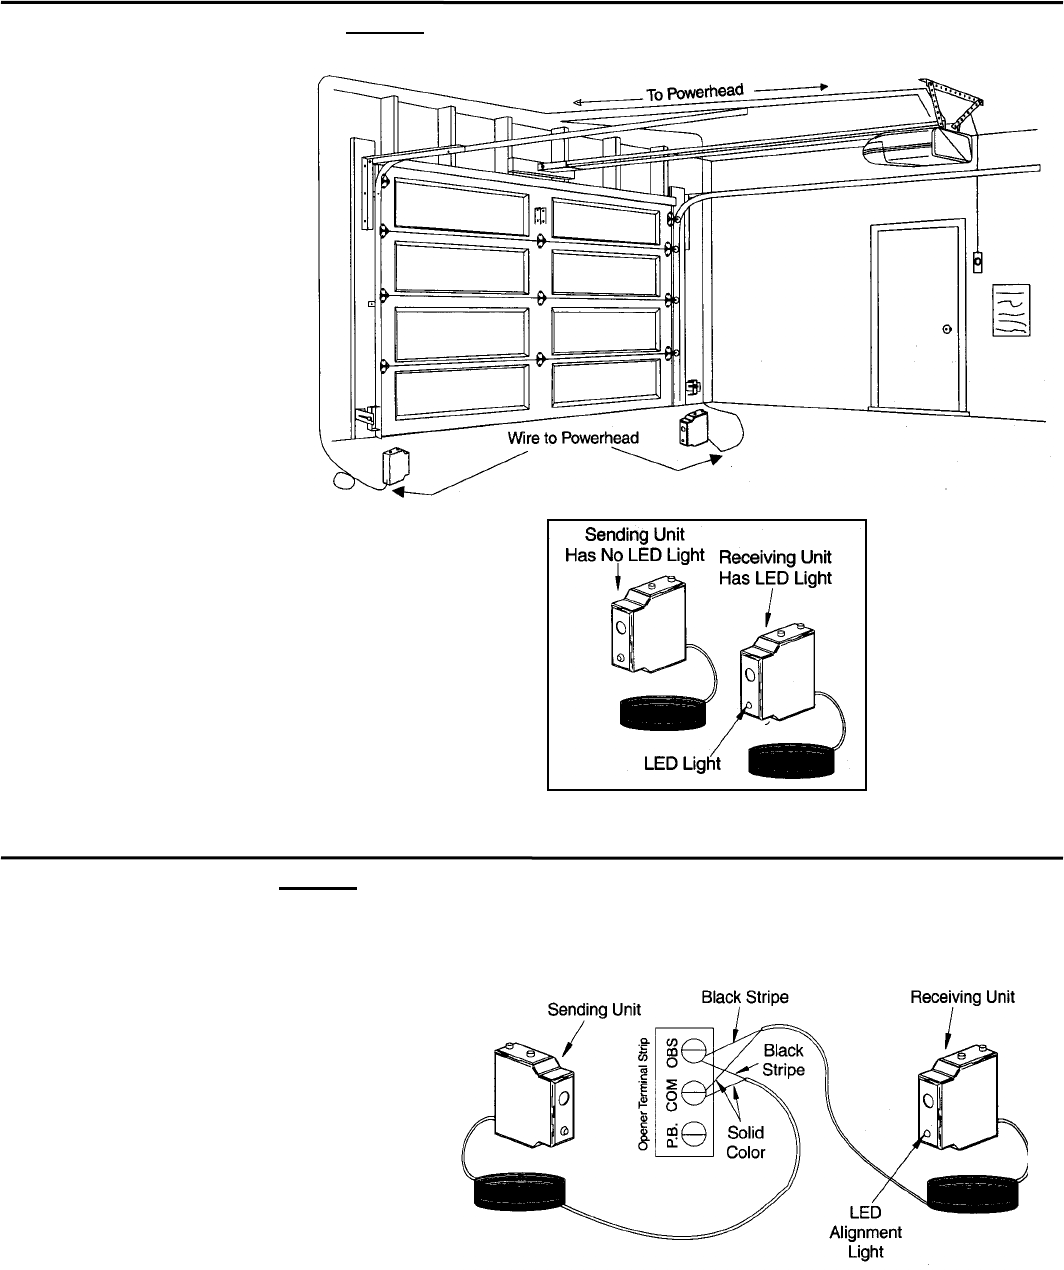 1997 f250 wiring diagram door page 12 of wayne-dalton garage door opener series 3000 ...